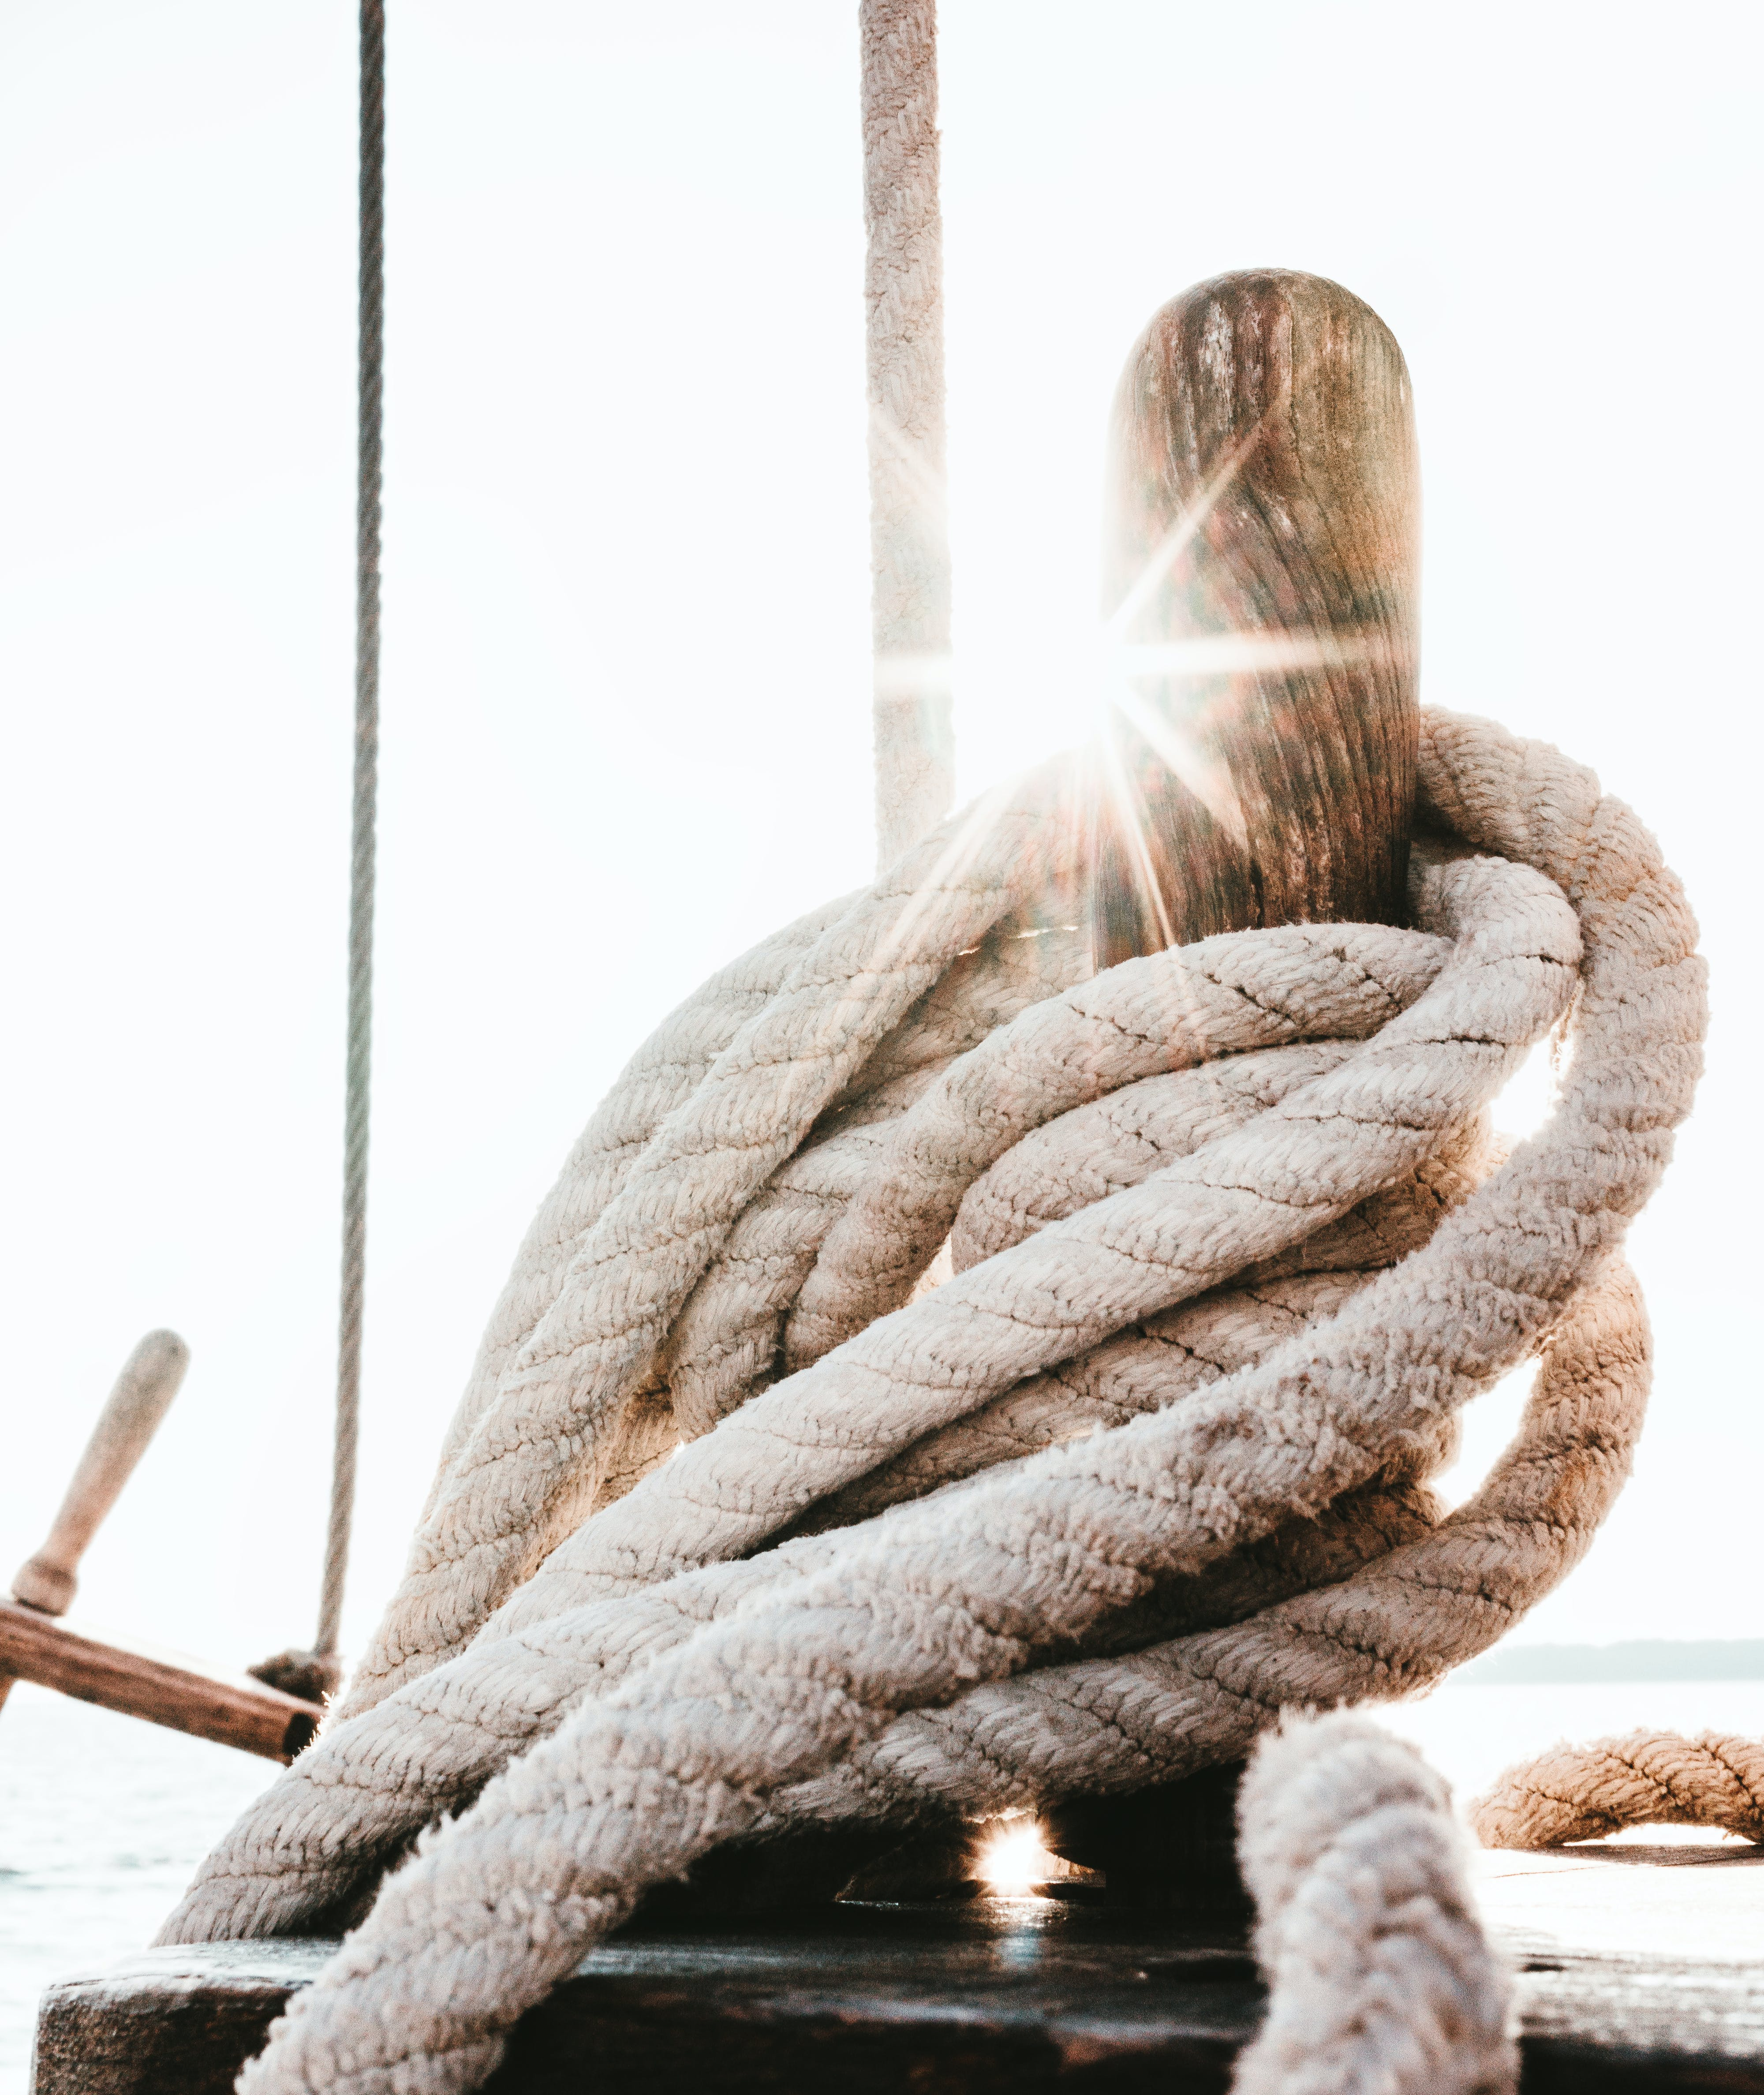 Brown Wooden Stick Surrounded by Rope